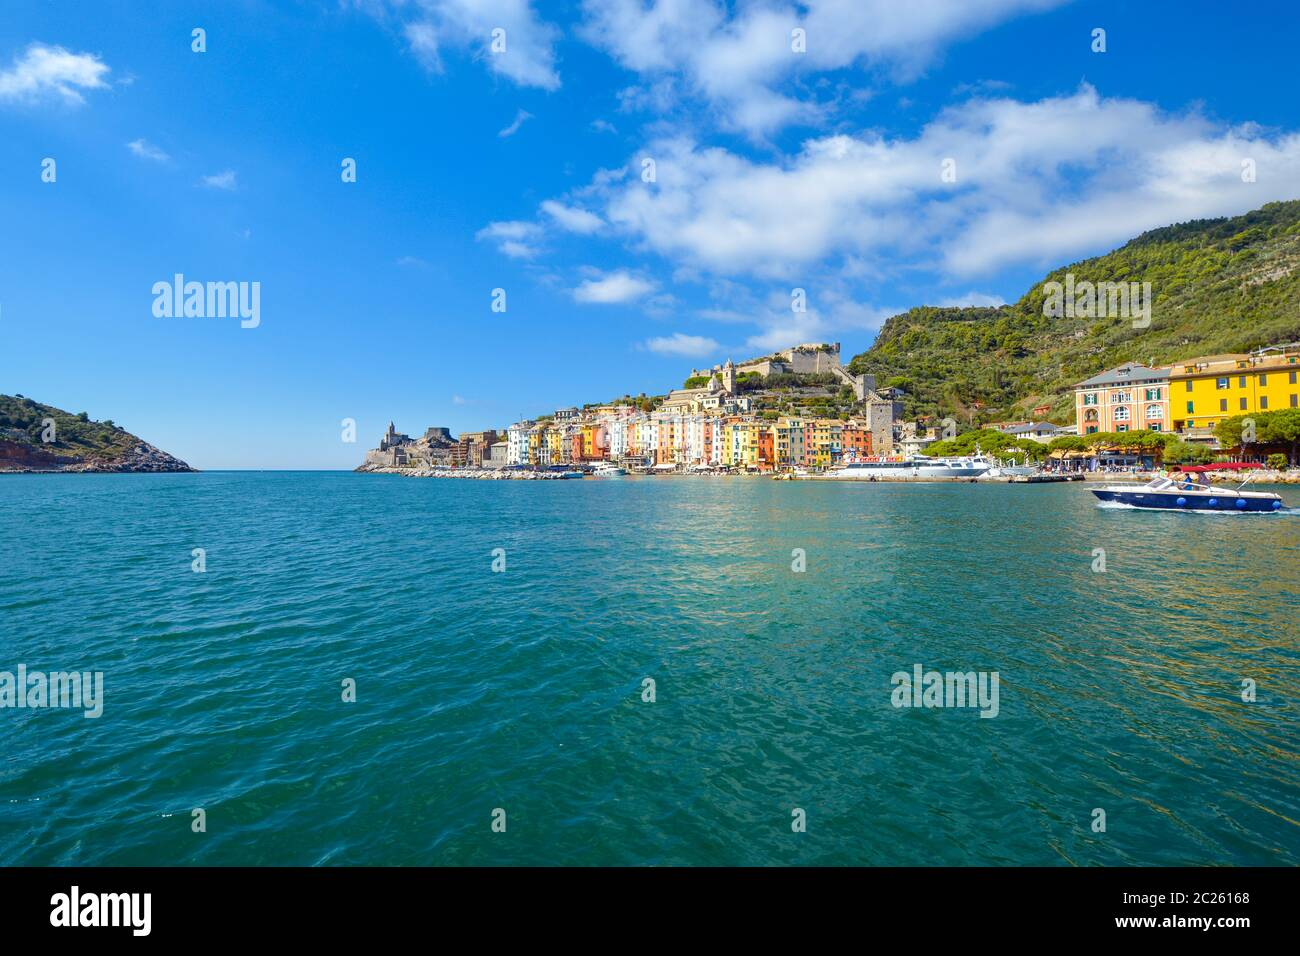 A speed boat crosses the colorful harbor of the village of Portovenere, Italy, on the Ligurian Coast near Cinque Terre. Stock Photo